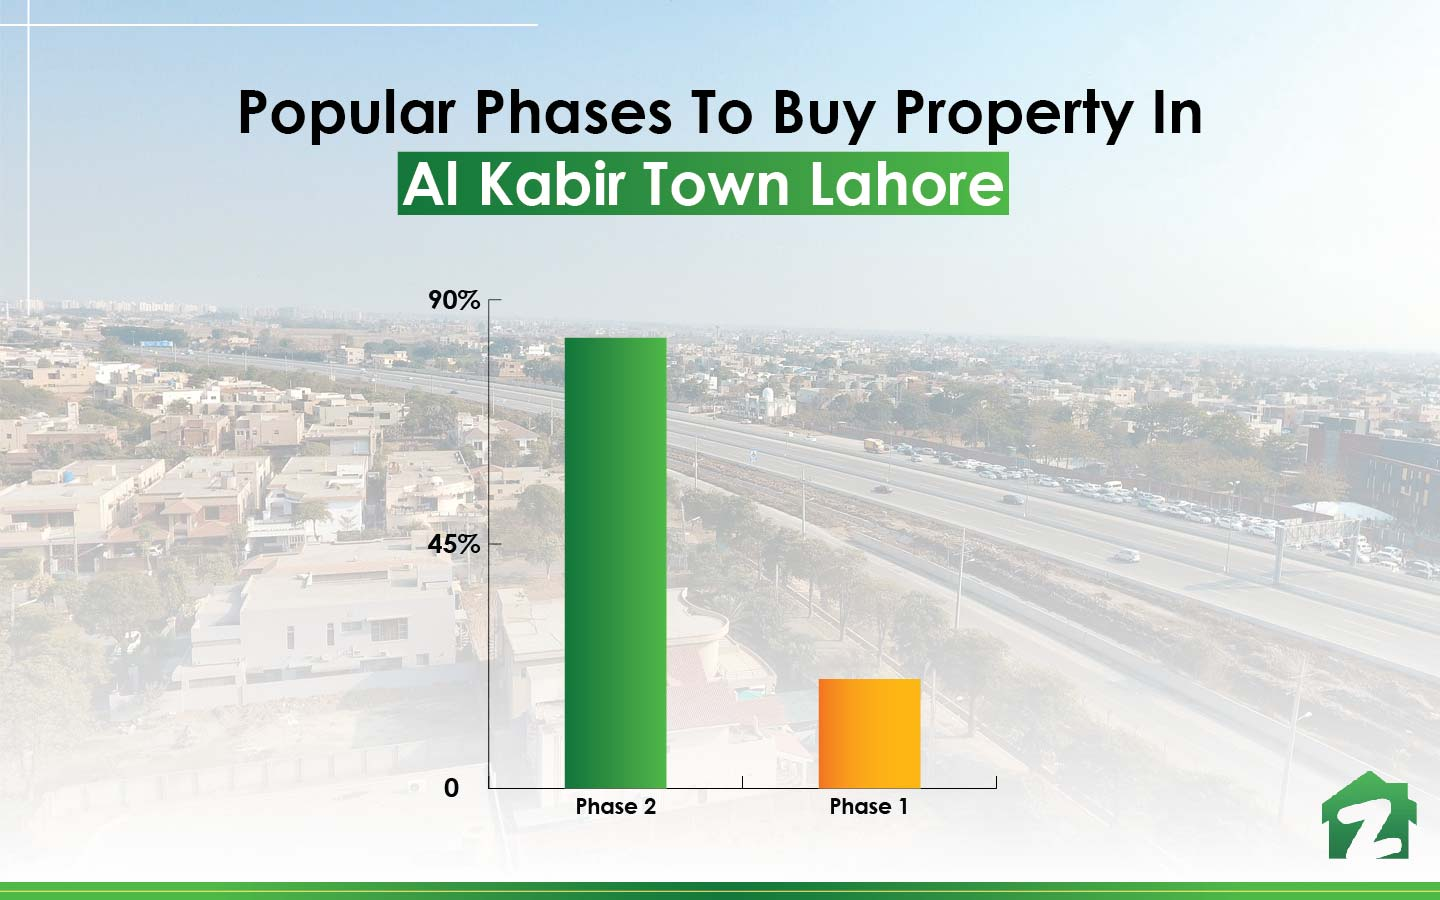 Famous phases to buy property in Al Kabir Town Lahore